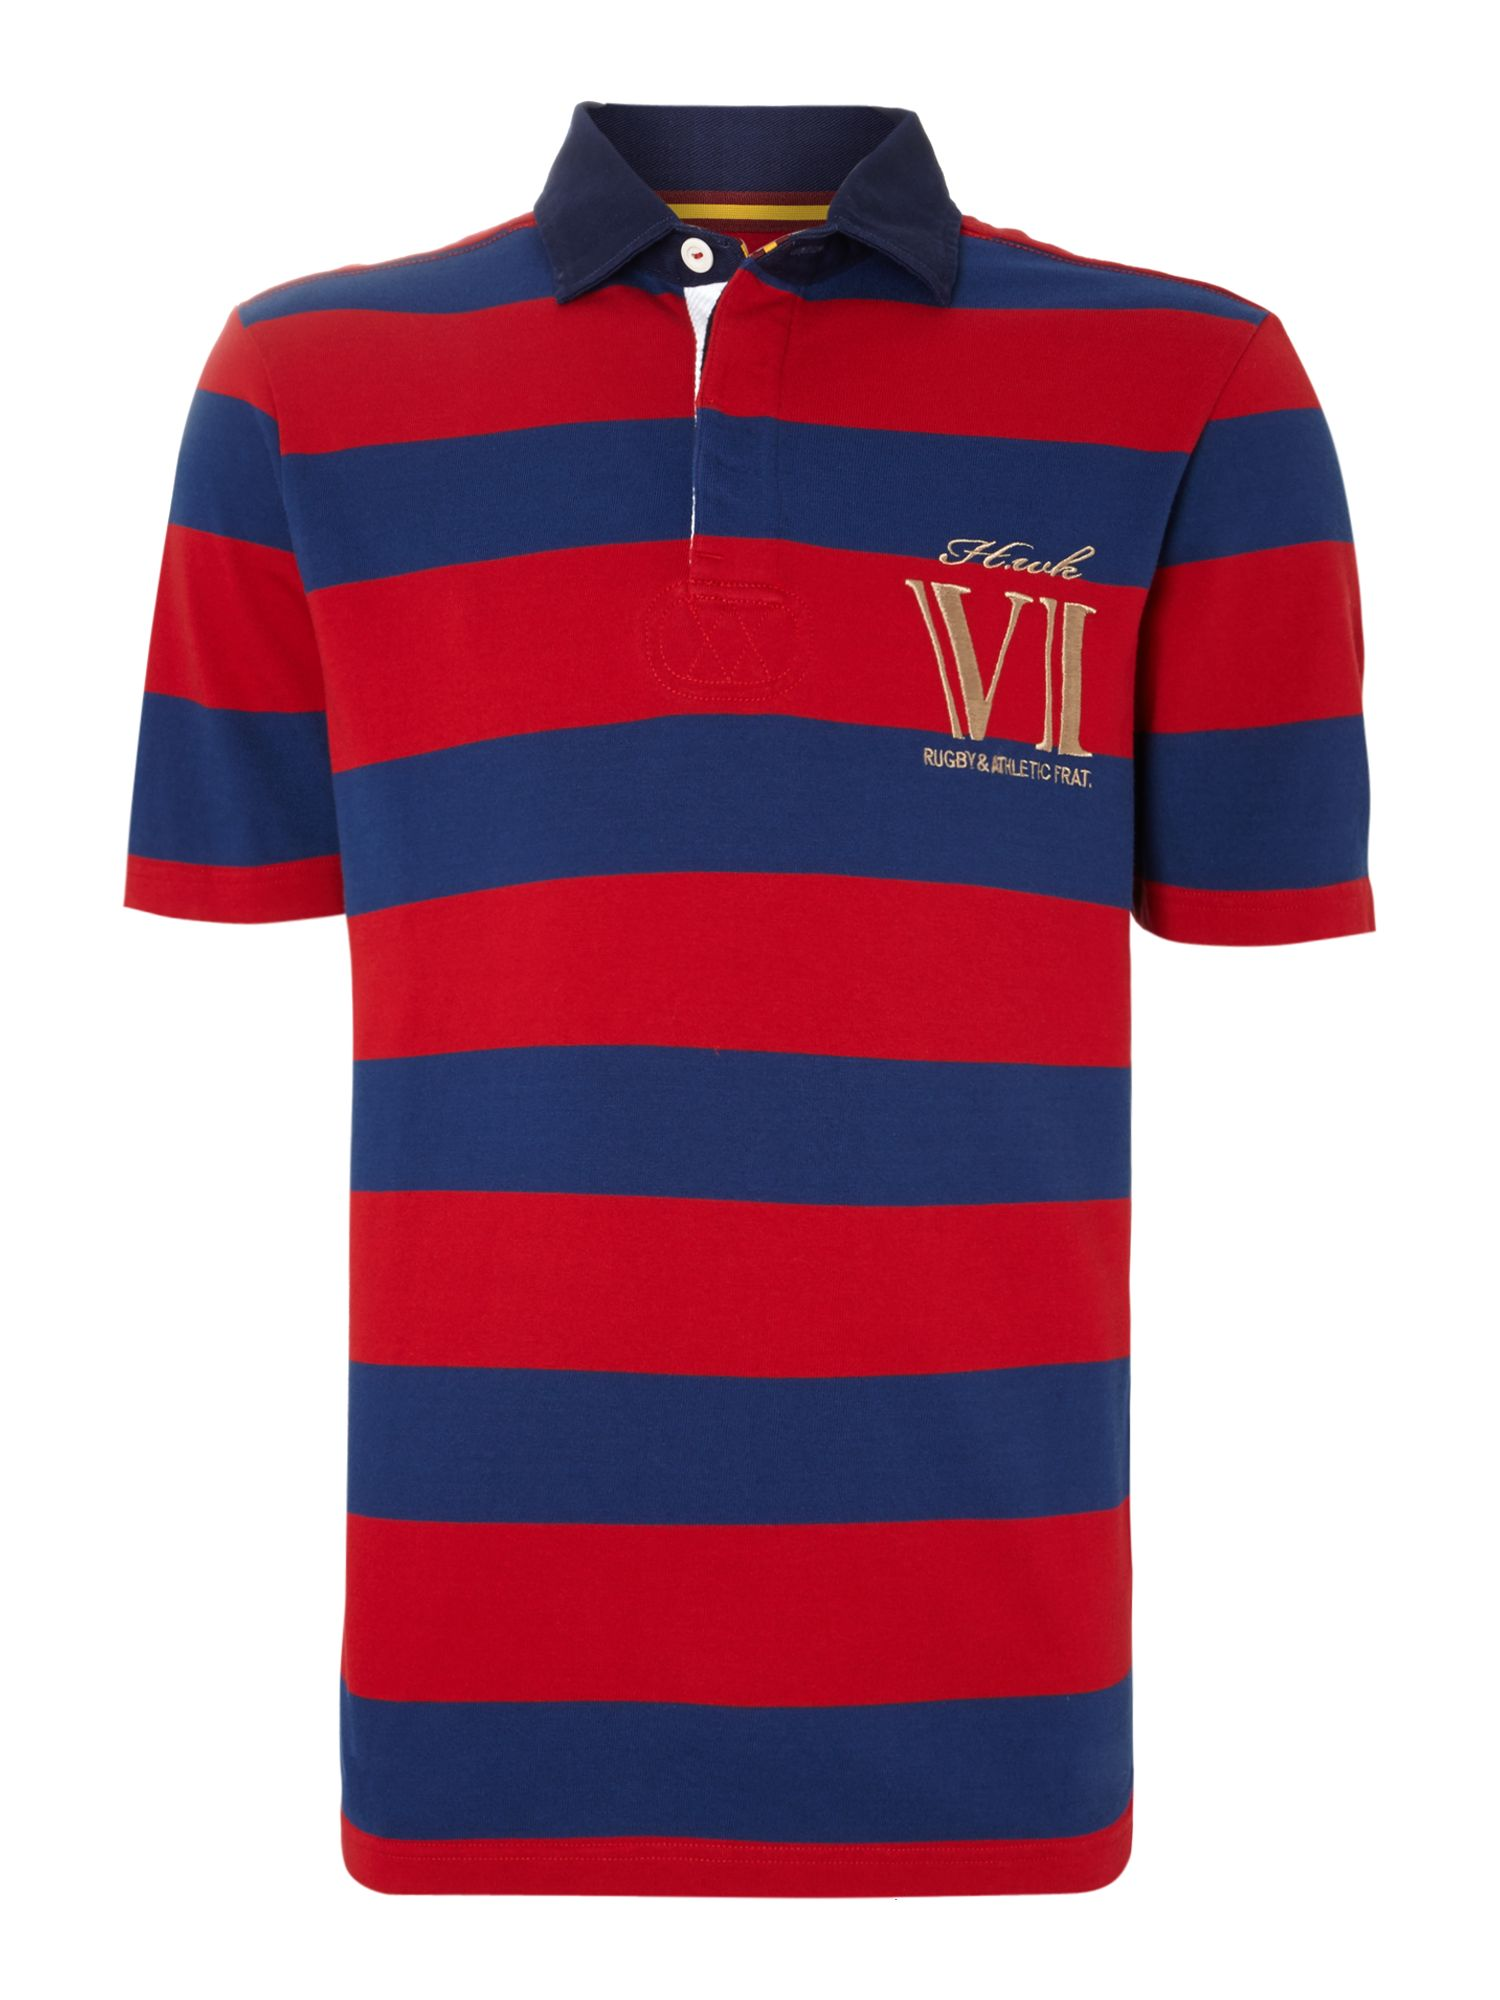 Pickering Rugby Jersey